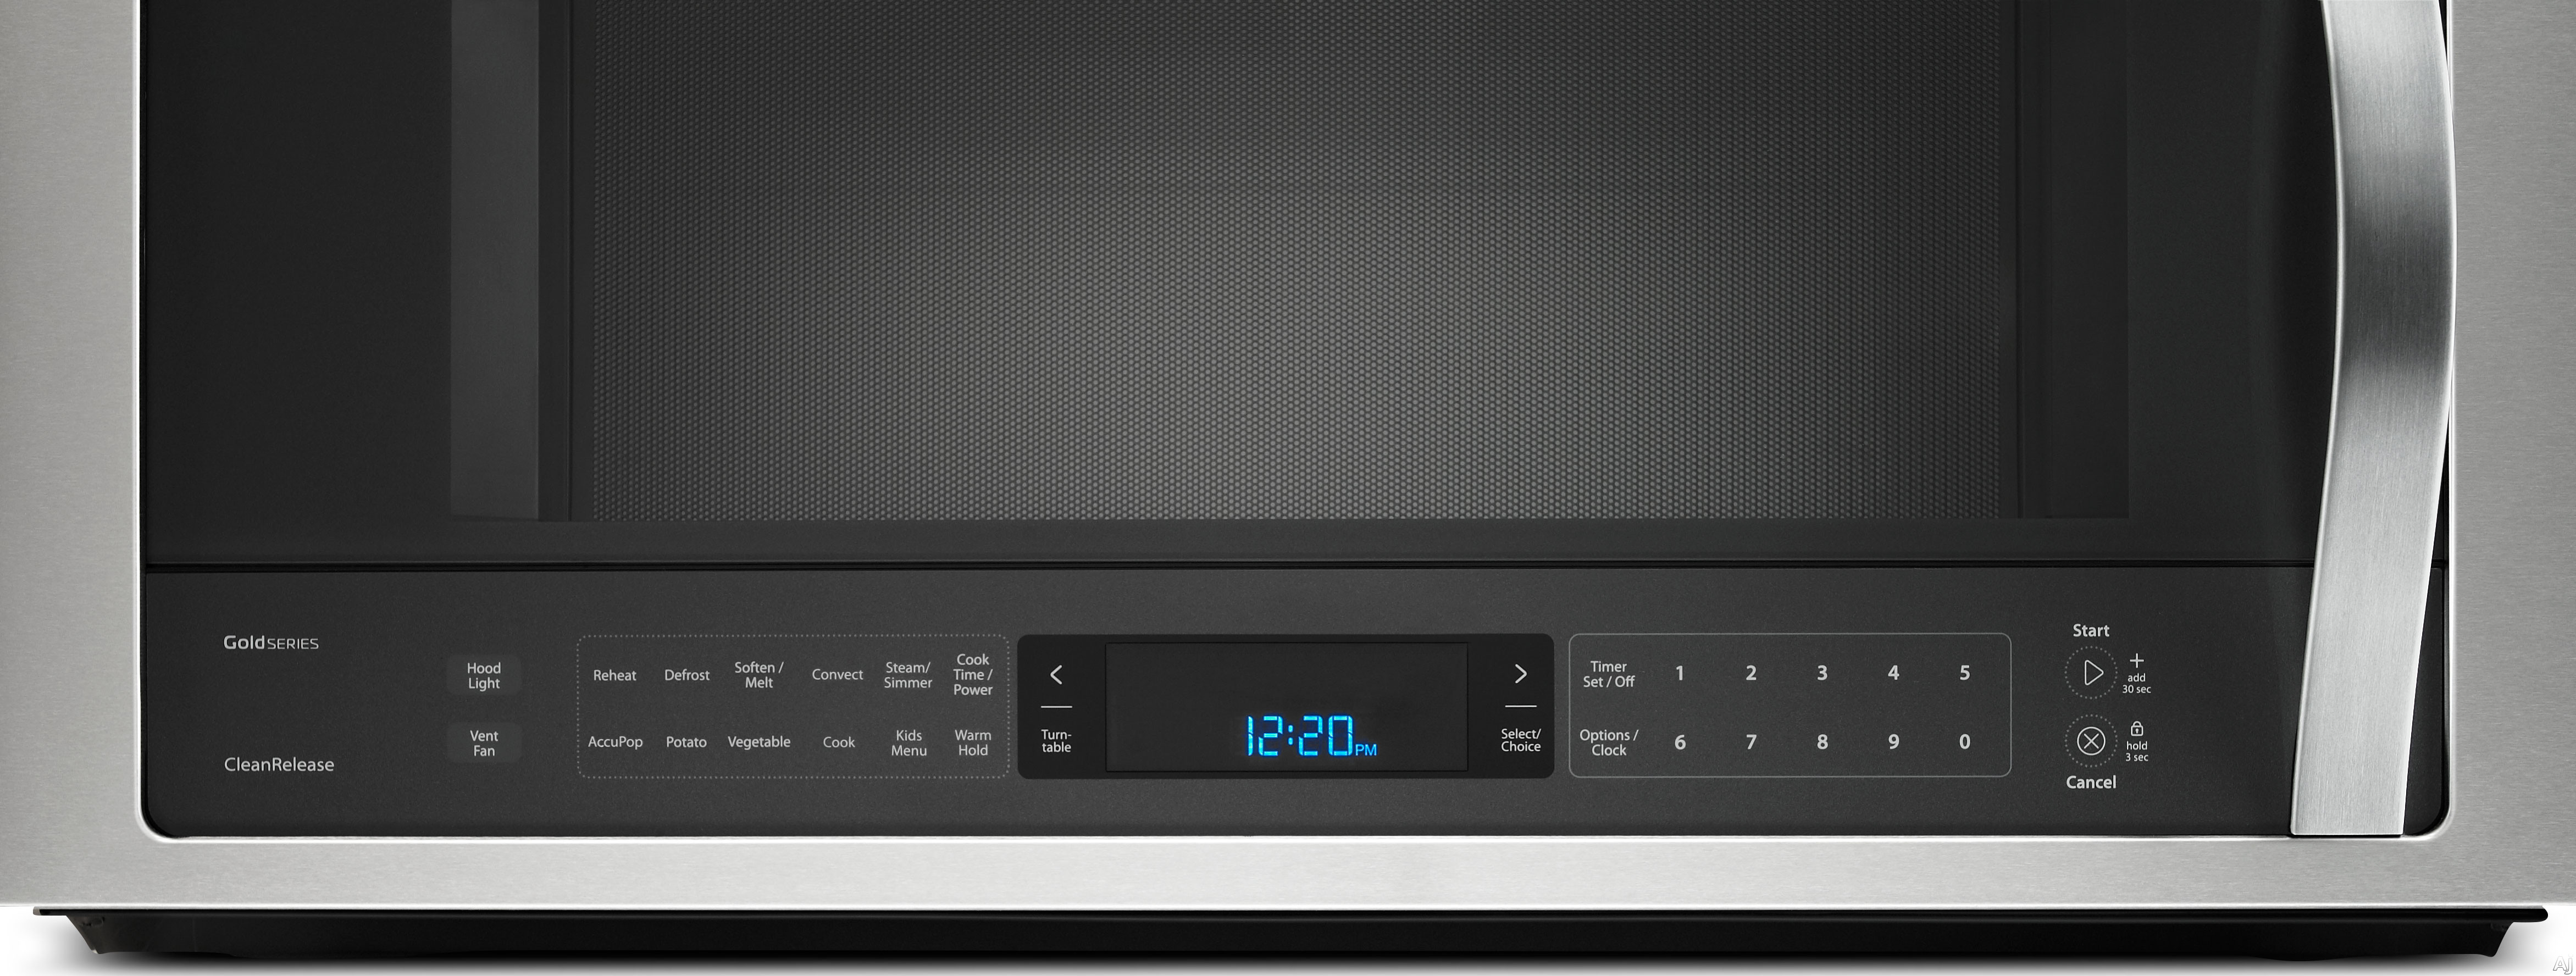 Whirlpool Wmh76719cs 1 9 Cu Ft Over The Range Microwave Oven With 400 Cfm Ventilation True